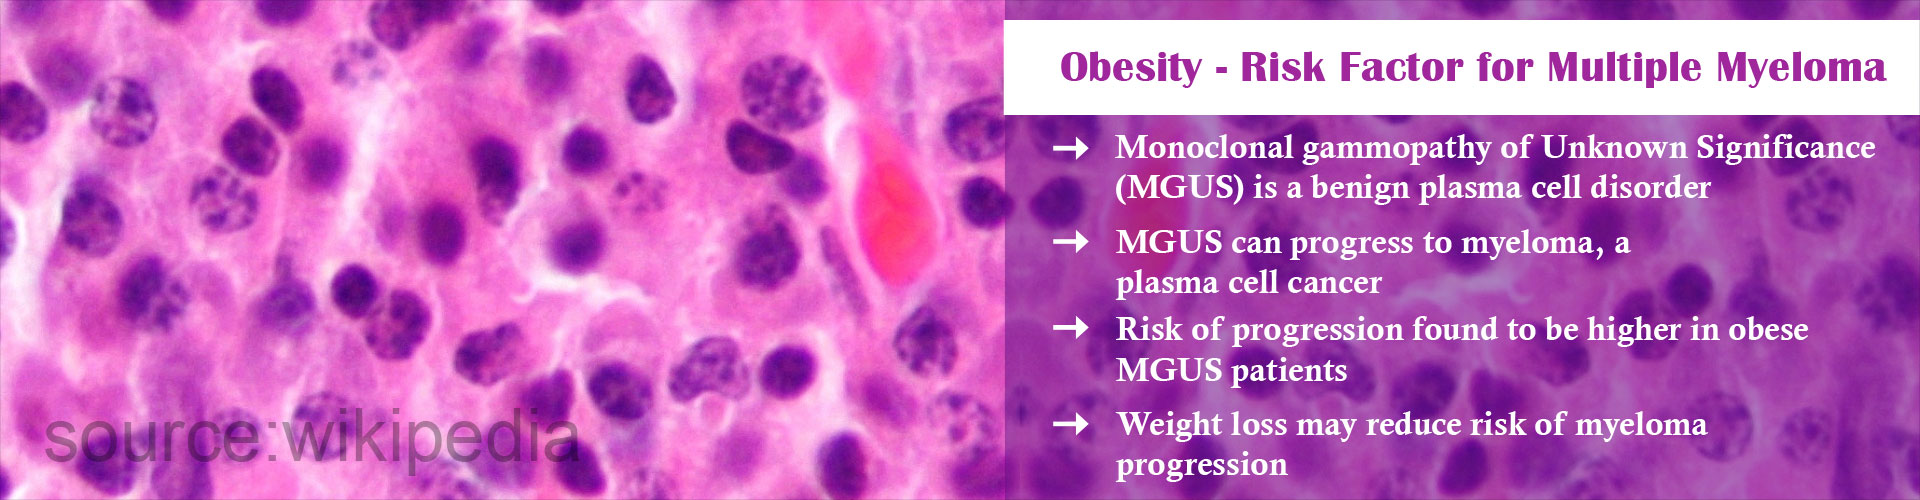 Weight Loss May Reduce Risk Of Progression Of Mgus To Multiple Myeloma